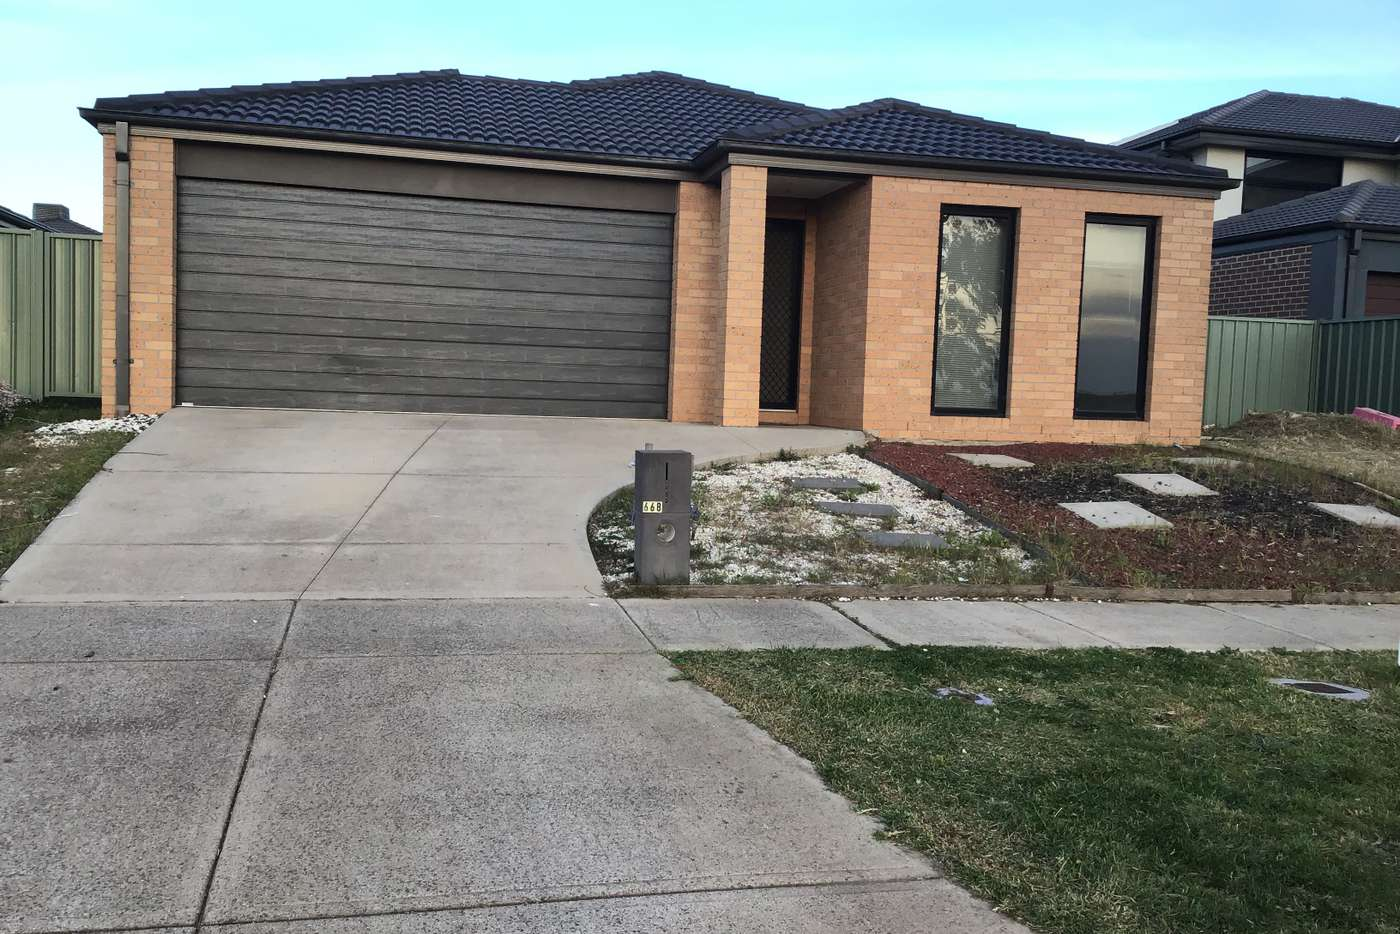 Main view of Homely house listing, 668 Armstrong Road, Wyndham Vale VIC 3024